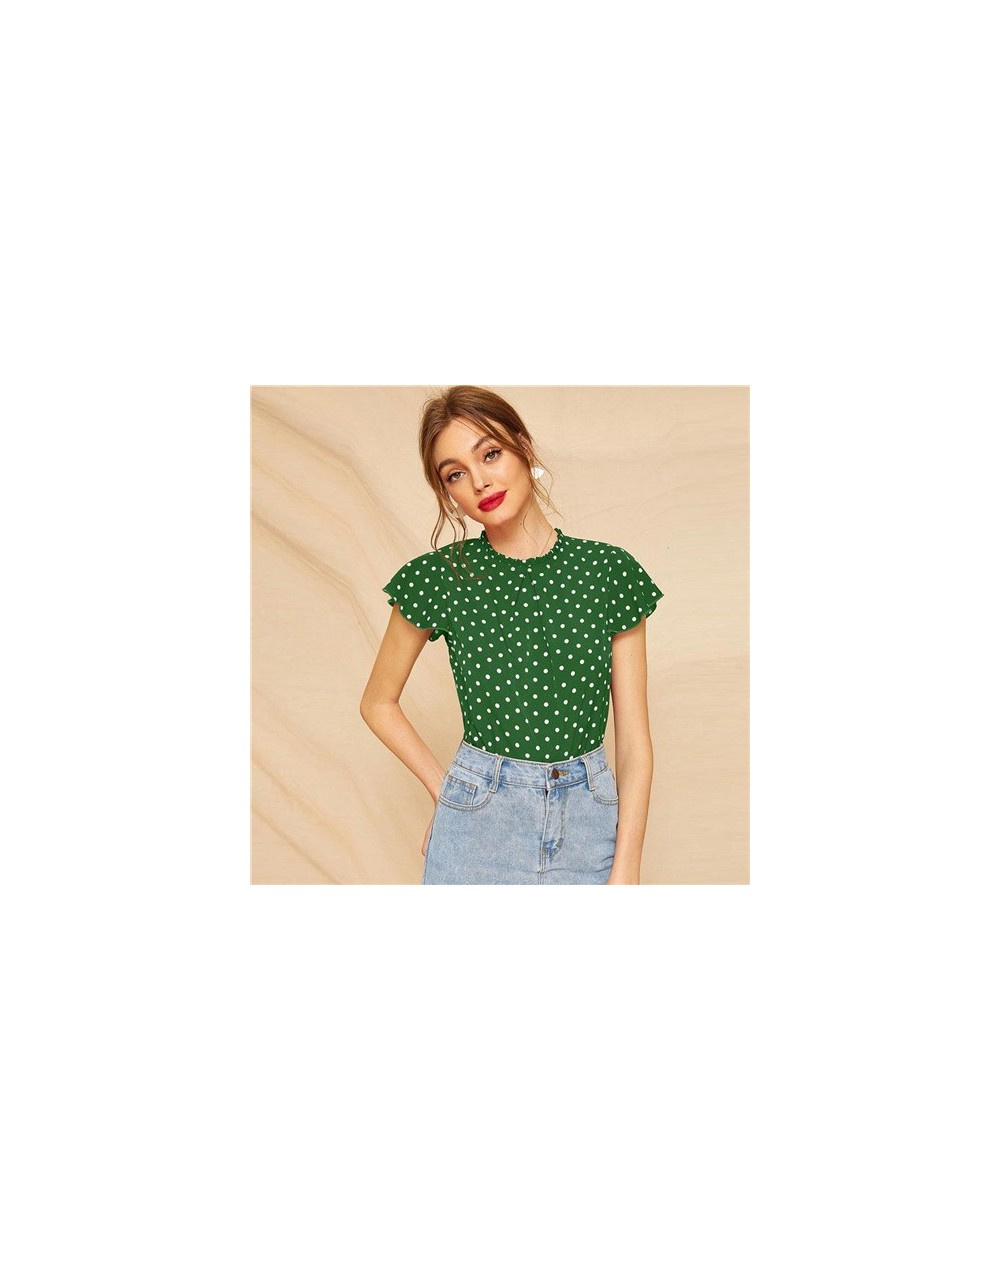 Butterfly Sleeve Polka Dot Frill Blouse Women Cute Cap Sleeve Top 2019 Summer Fashion Ladies Tops and Blouses - Green - 4041...